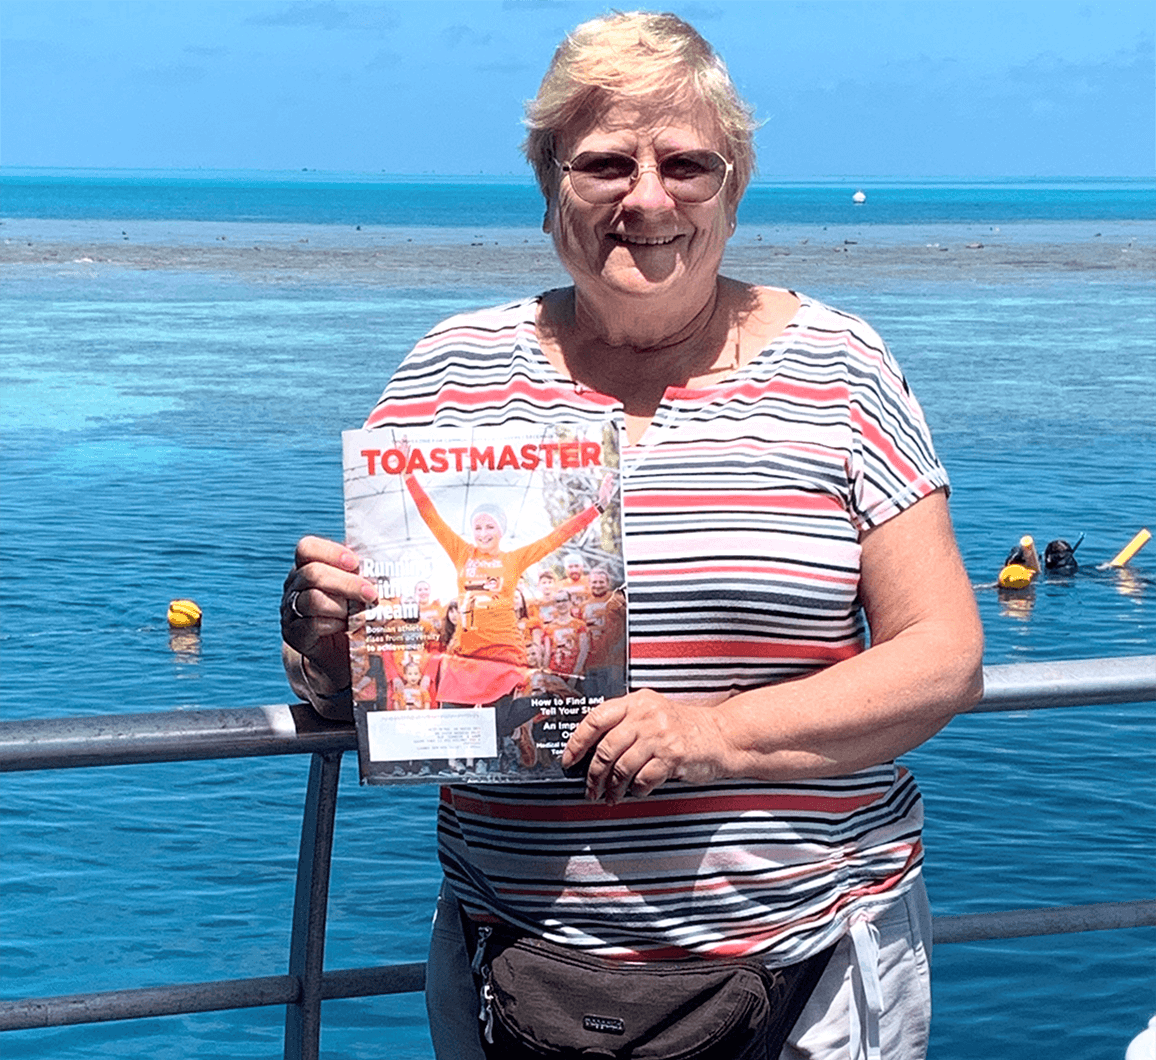 Mary Beganyi, DTM, of Las Vegas, Nevada, visits the Great Barrier Reef in Australia—the world's largest coral reef system. She dreamed of visiting for years and was finally able to just before the COVID-19 pandemic.